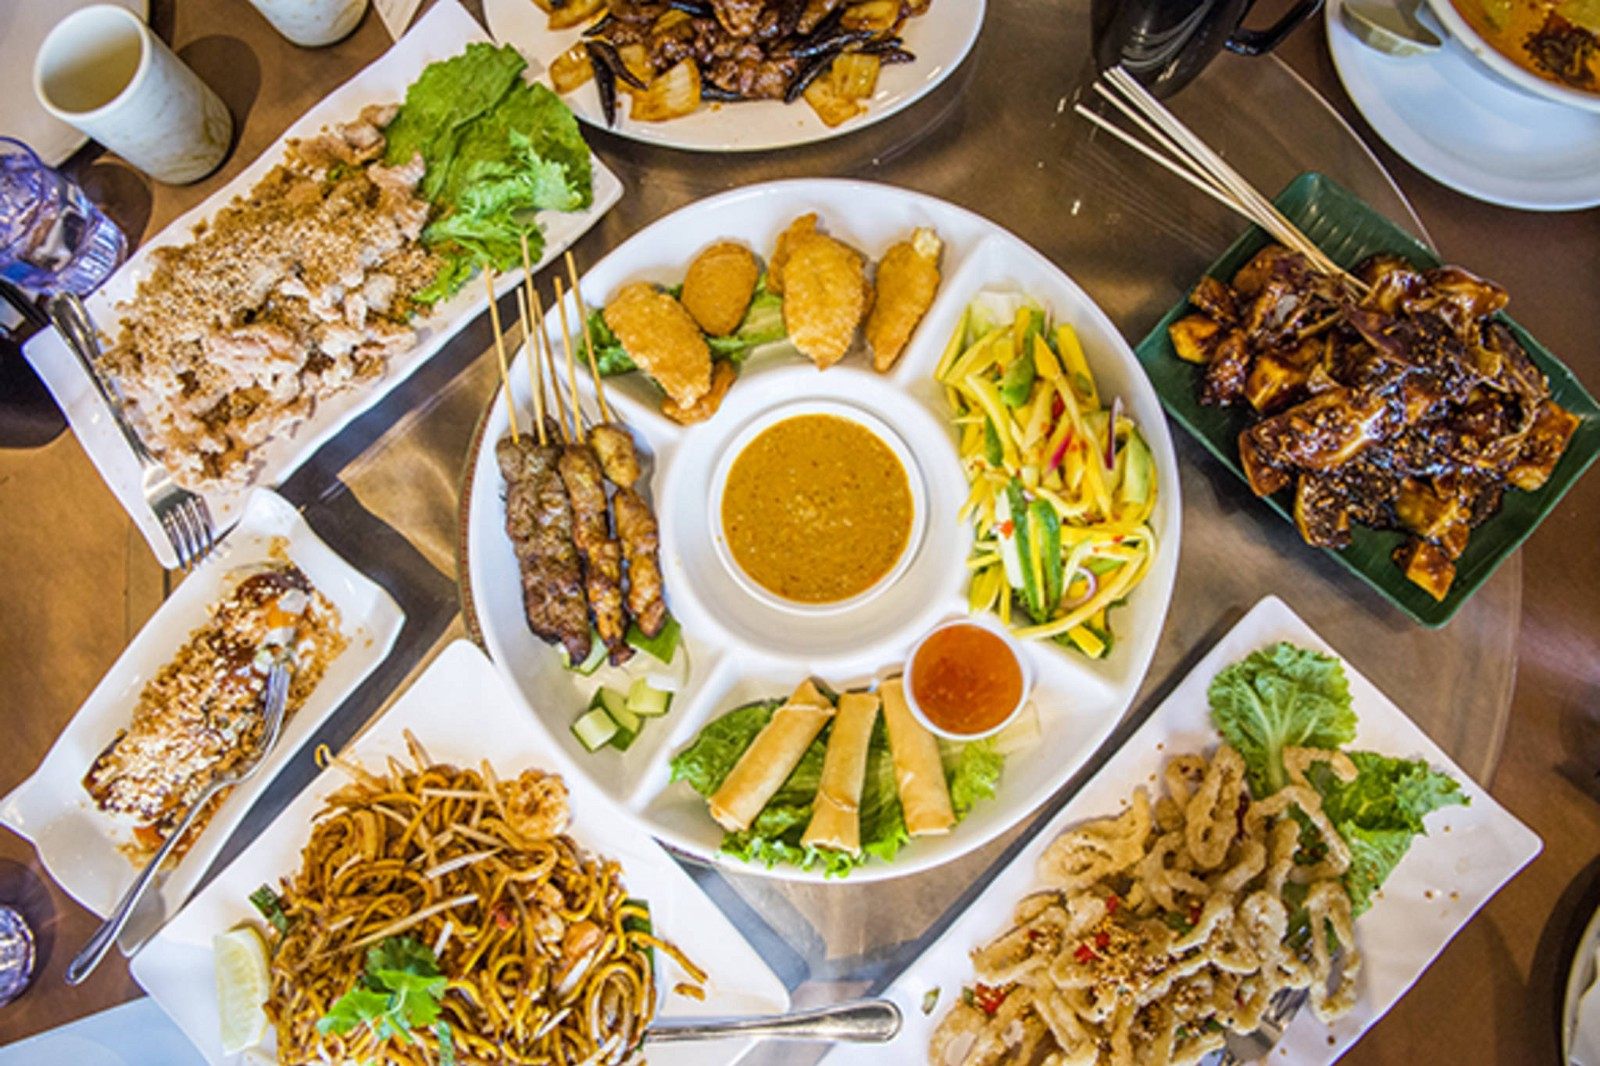 We Provide You With The Contact Details And Location Of Some Best Malaysian Restaurants In Dubai Find Compare Menus